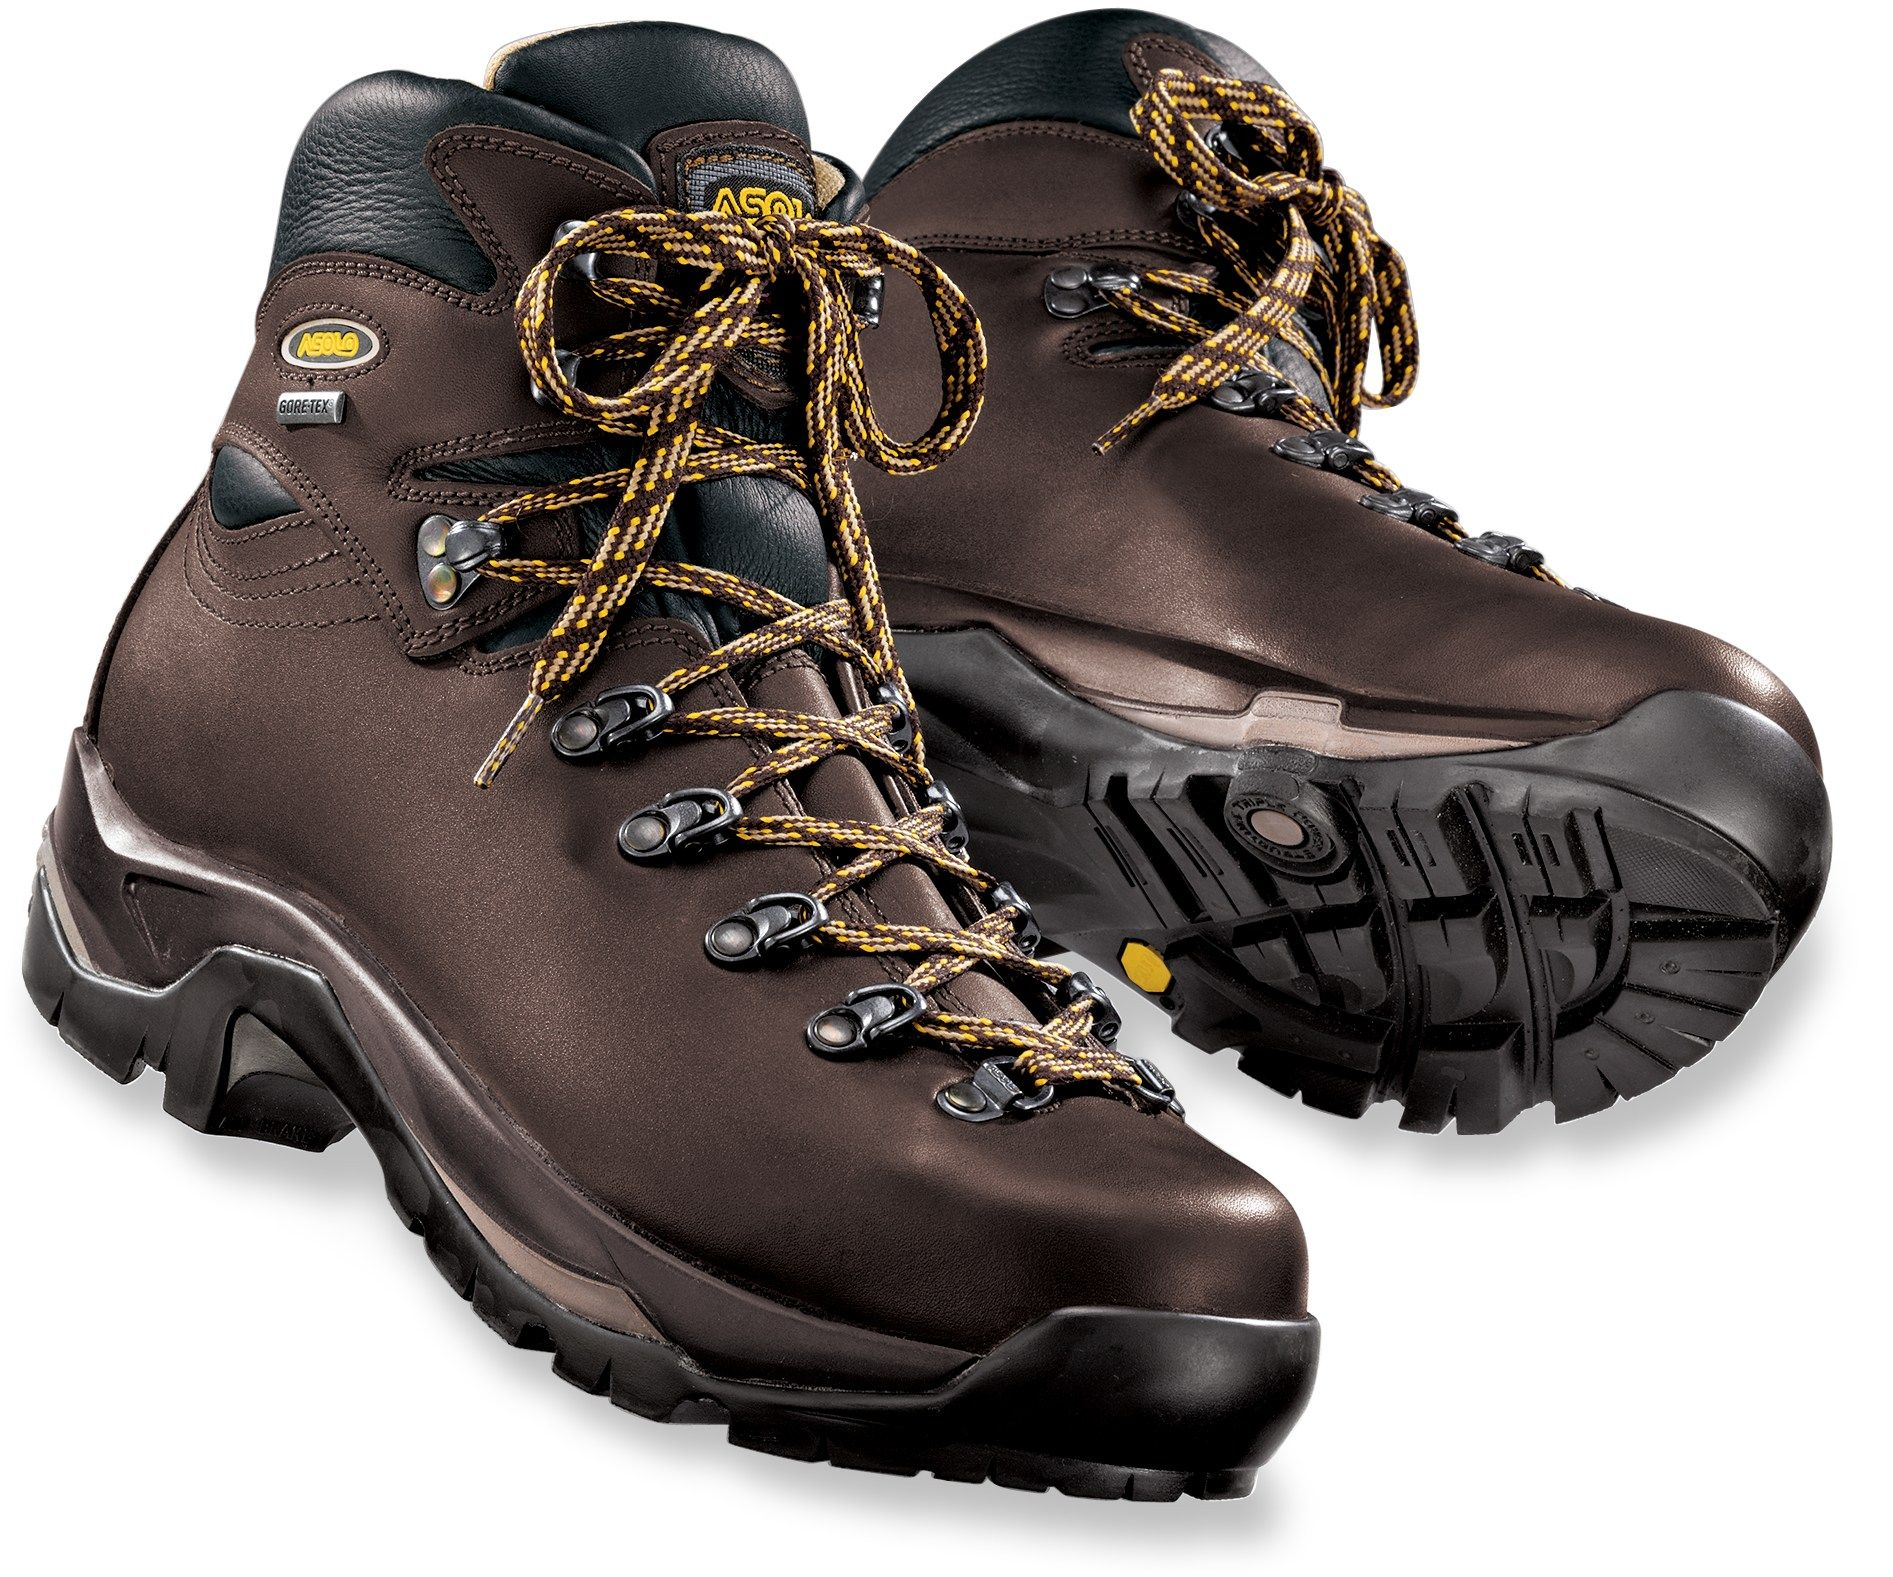 TPS 520 GV Evo Hiking Boots - Men's | Footwear, Hiking boots and Urban